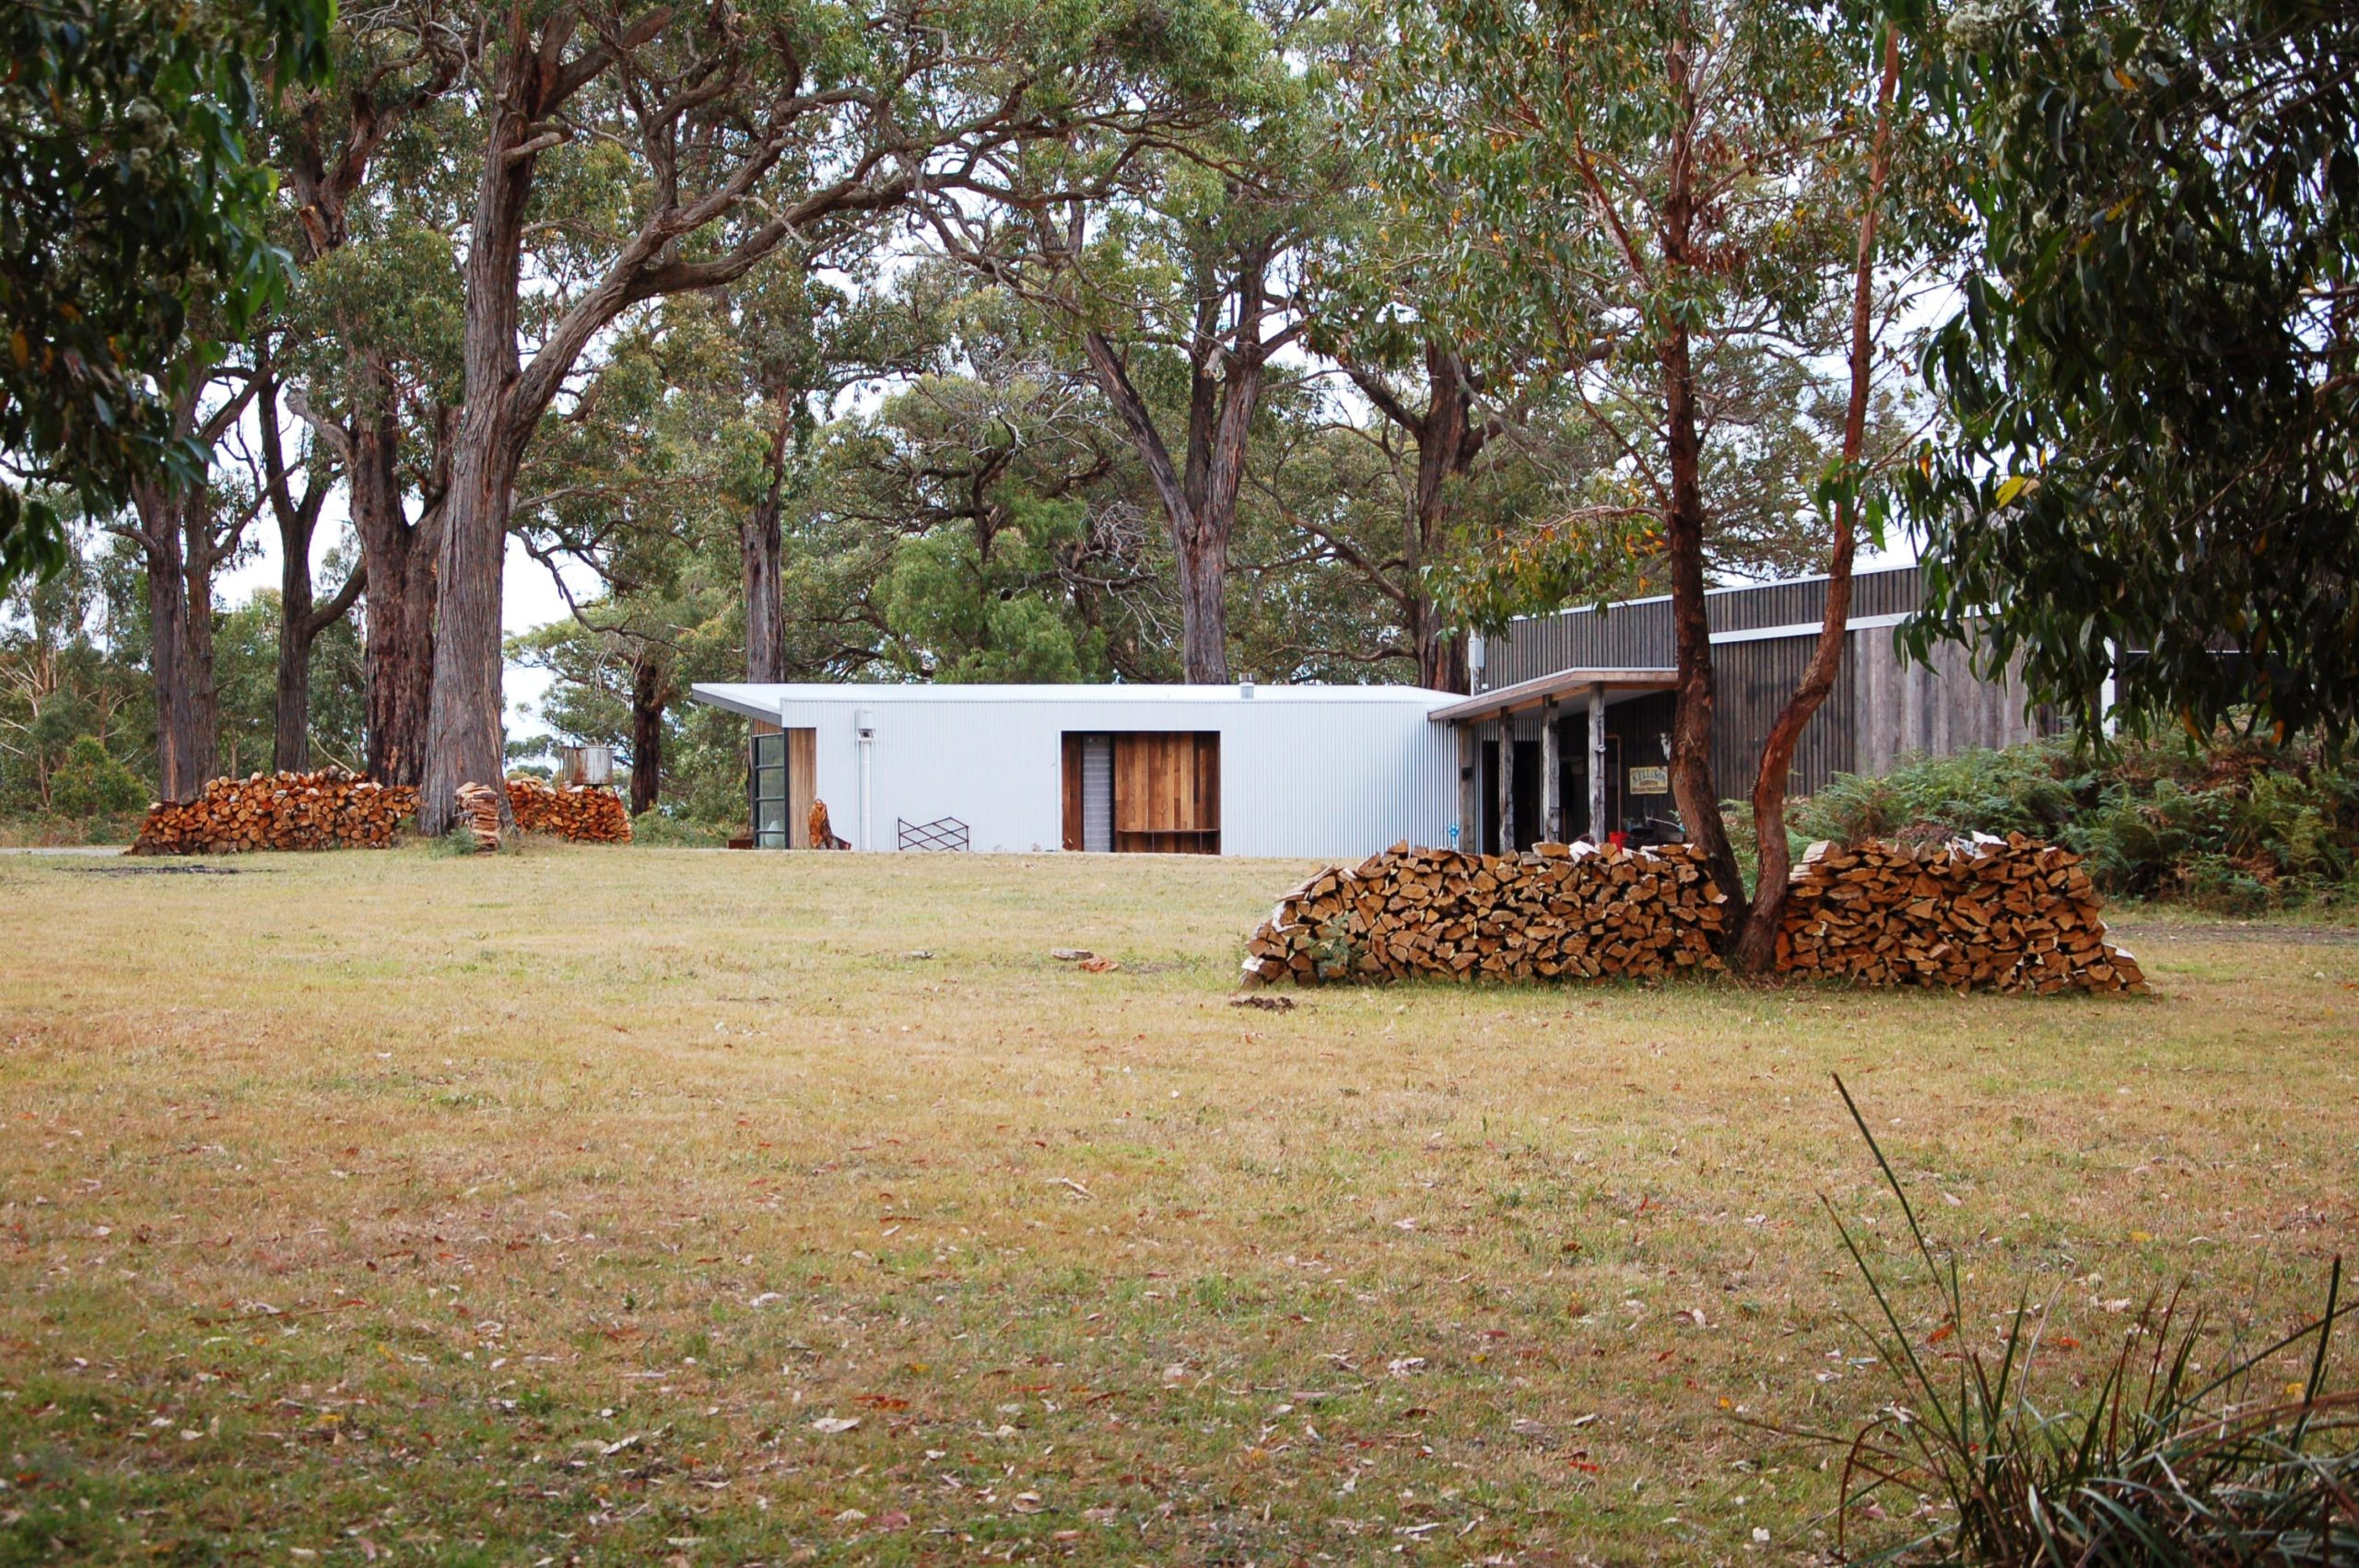 The front of the house has a large lawn of grass with shrubs and tall trees that give a nice background for the white exterior walls of the house. Here you can also see the piles of firewood stored beside the trees.